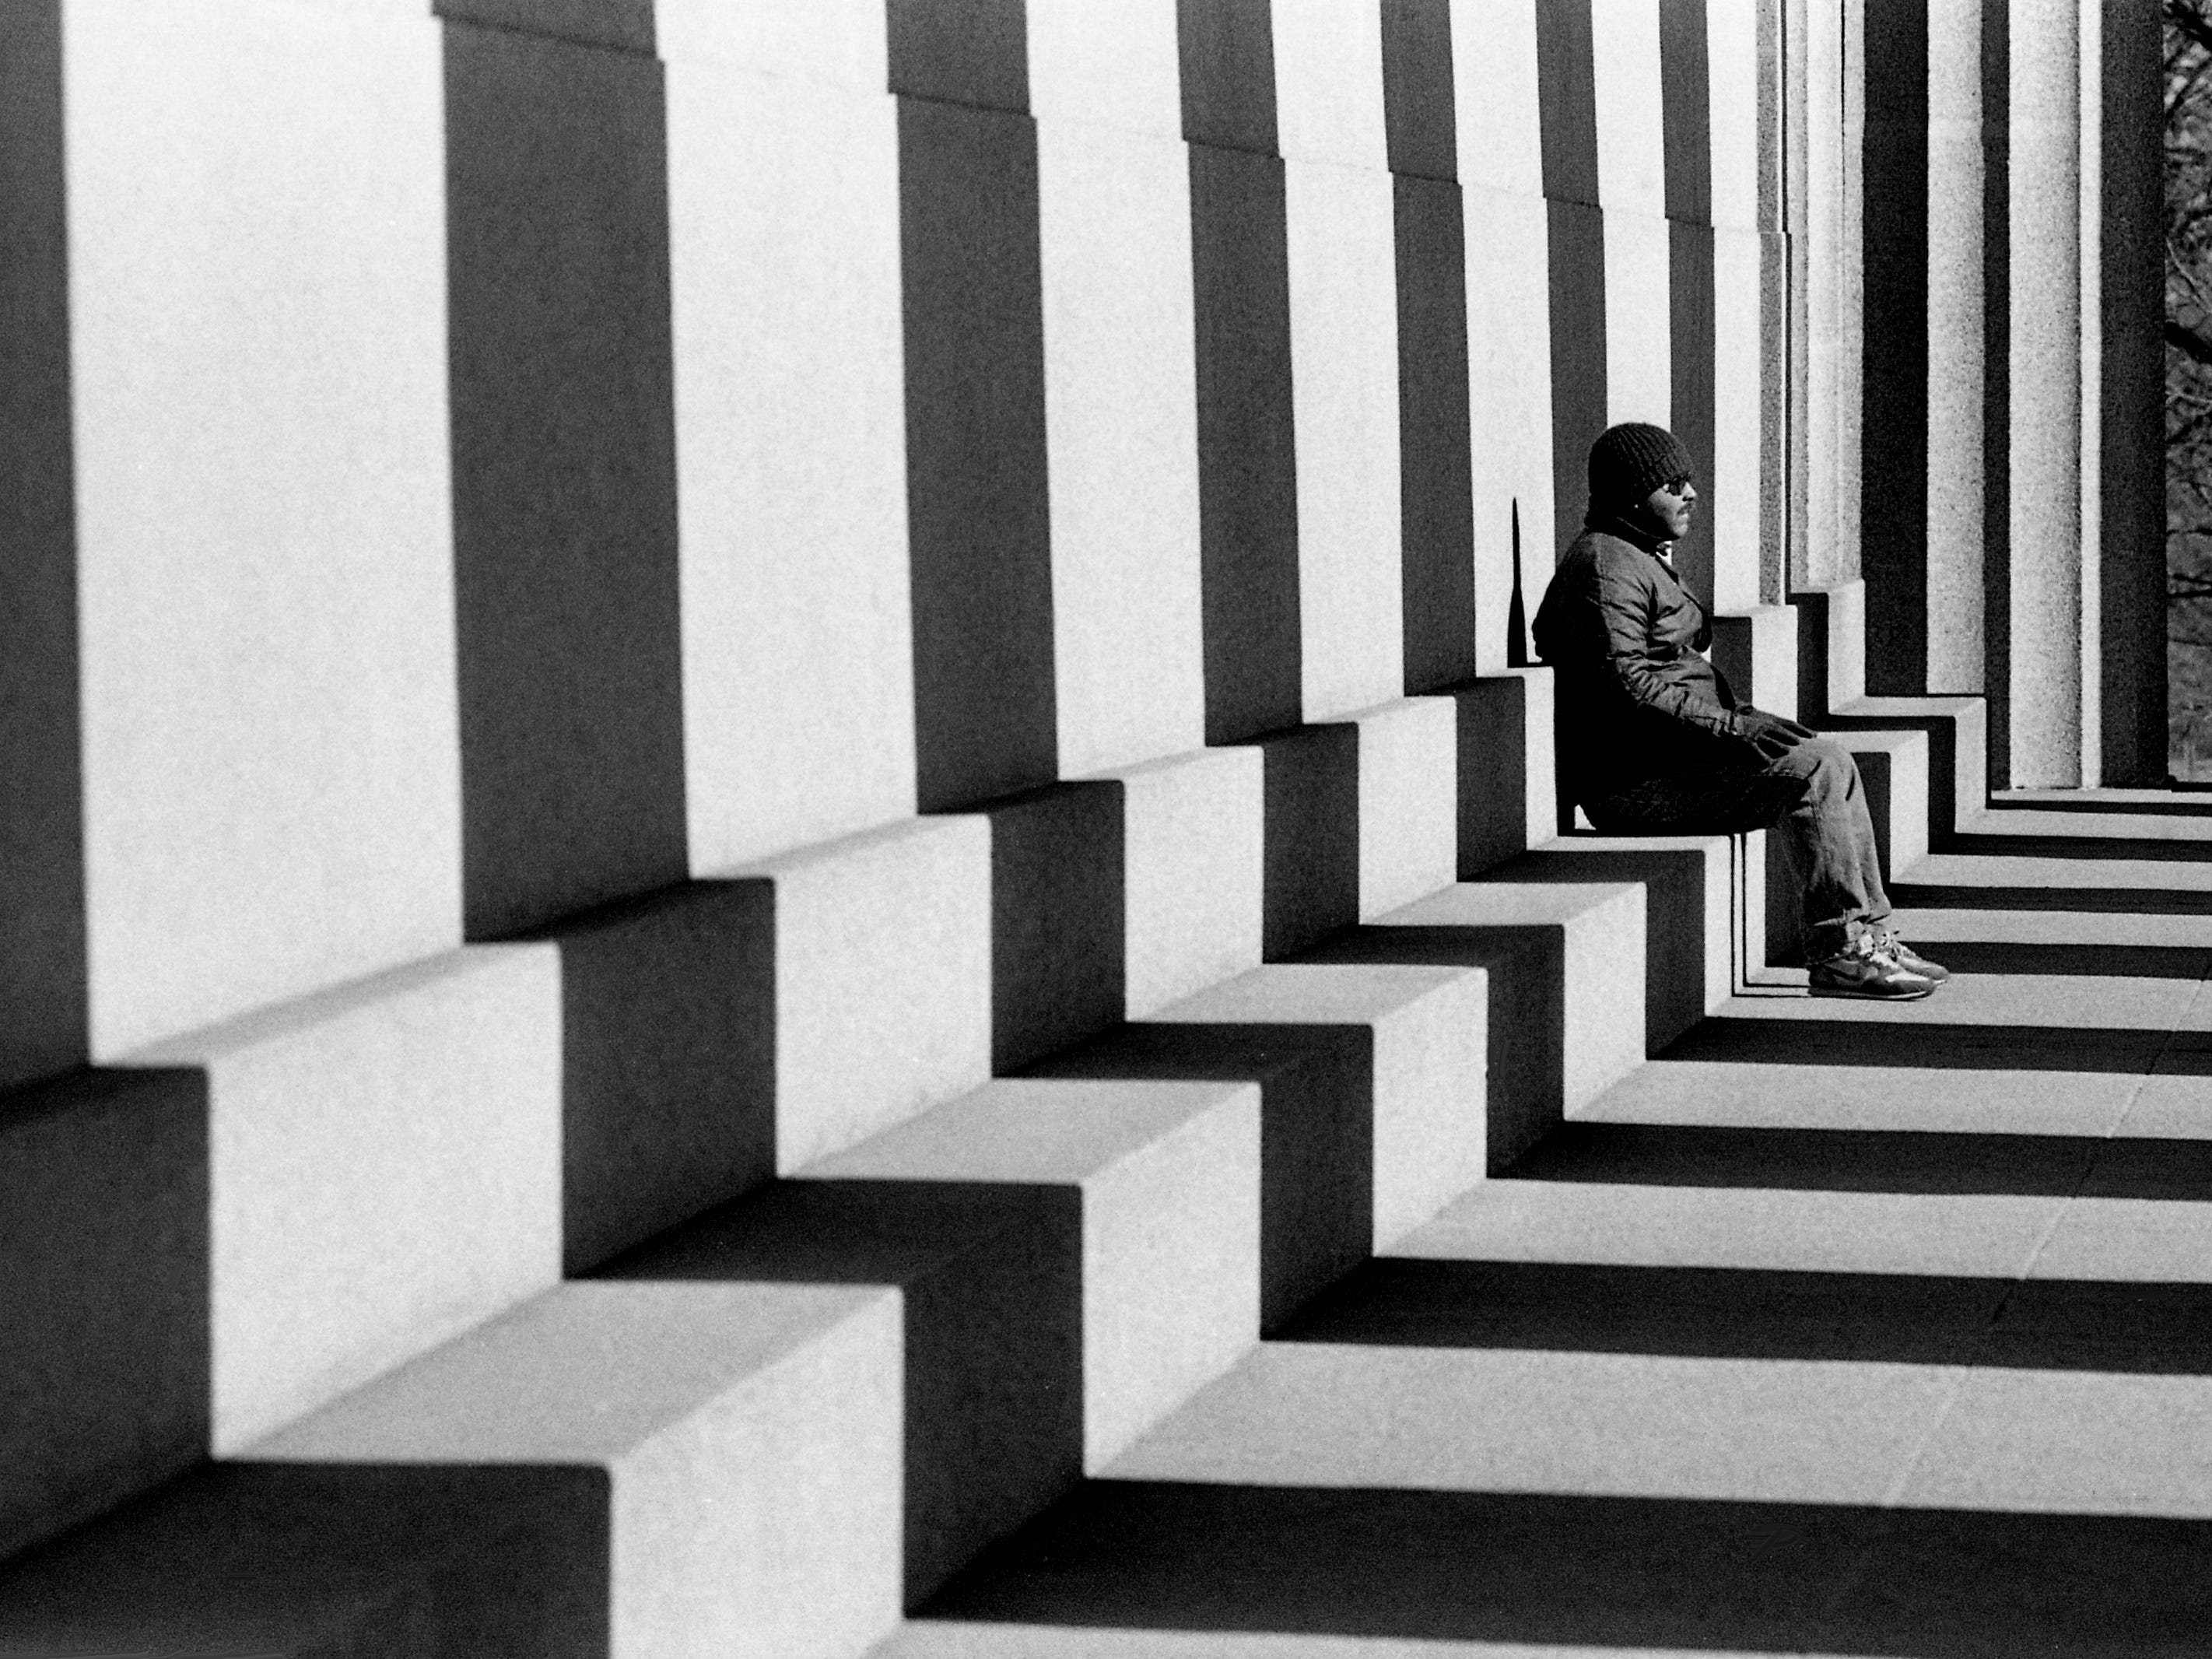 North Nashville resident Howard Robinson Jr. enjoys some winter sunshine while relaxing on the steps of the Parthenon in Centennial Park on Feb. 9, 1989.